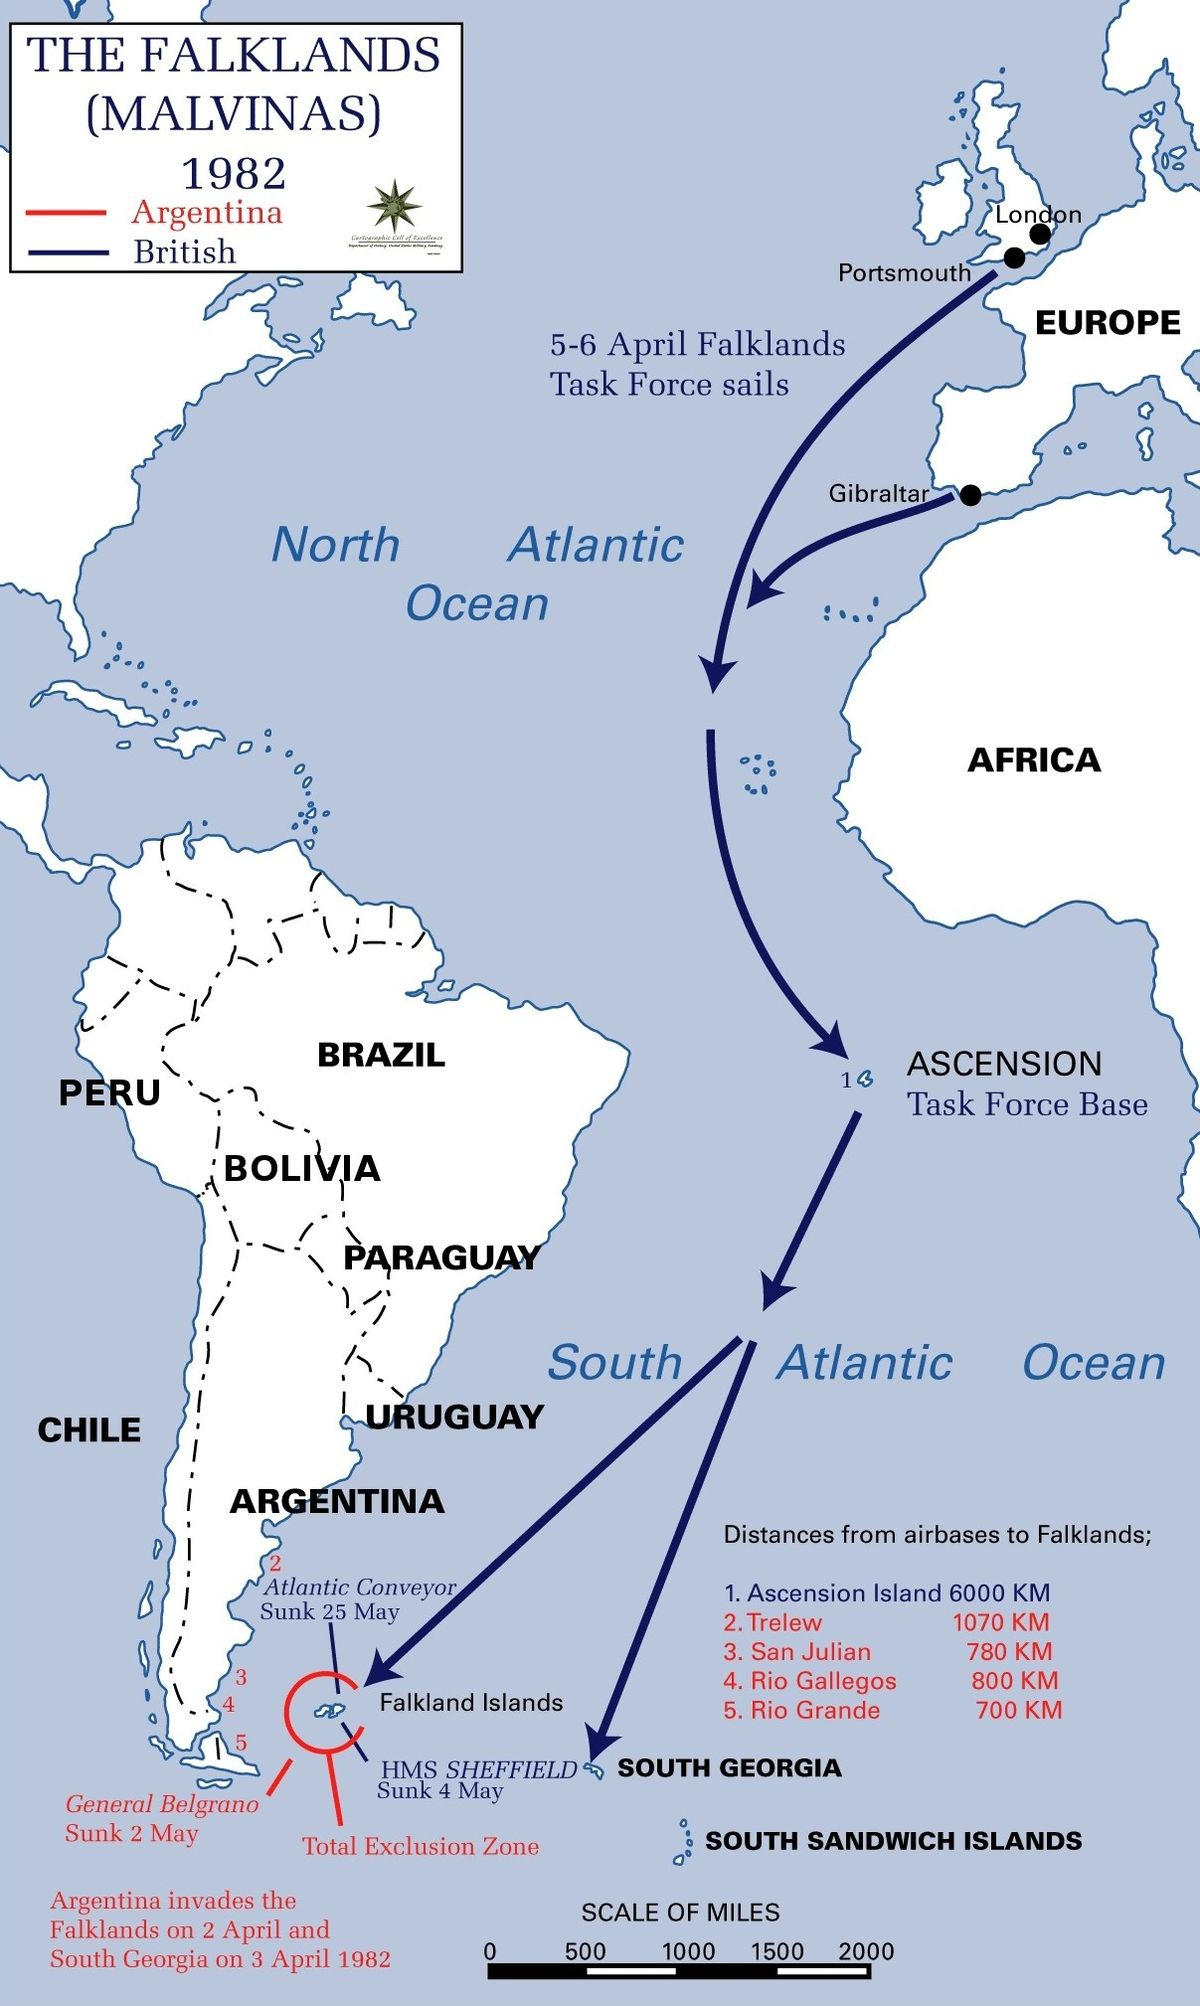 Falklands War - Wikipedia